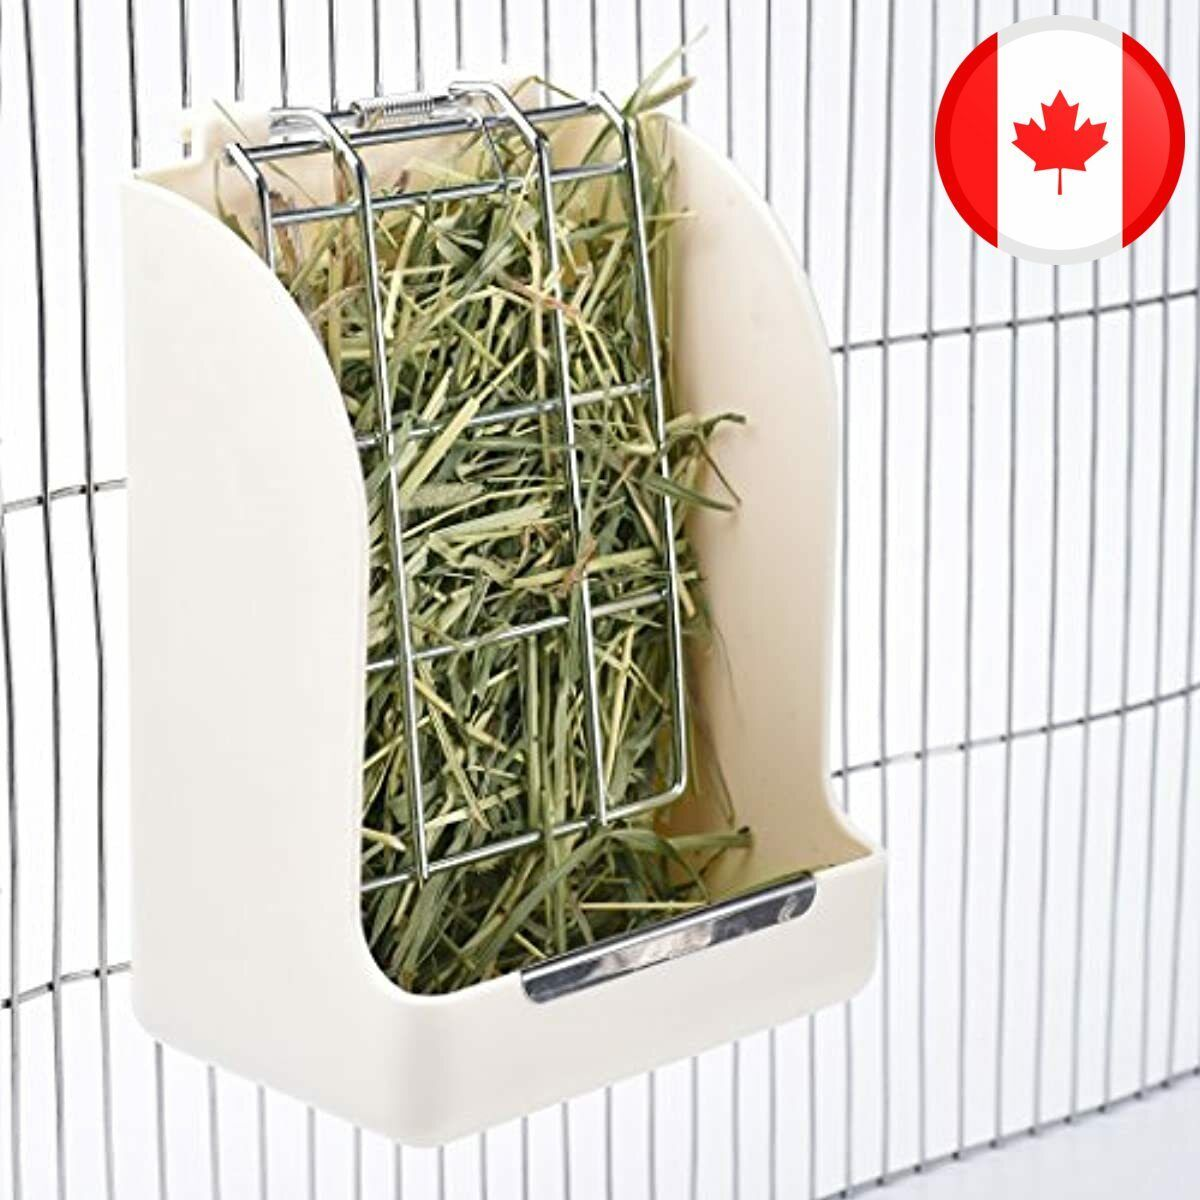 CalPalmy Hay Feeder For Rabbits, Guinea Pigs, And Chinchillas - Minimize Waste A - CA$29.99